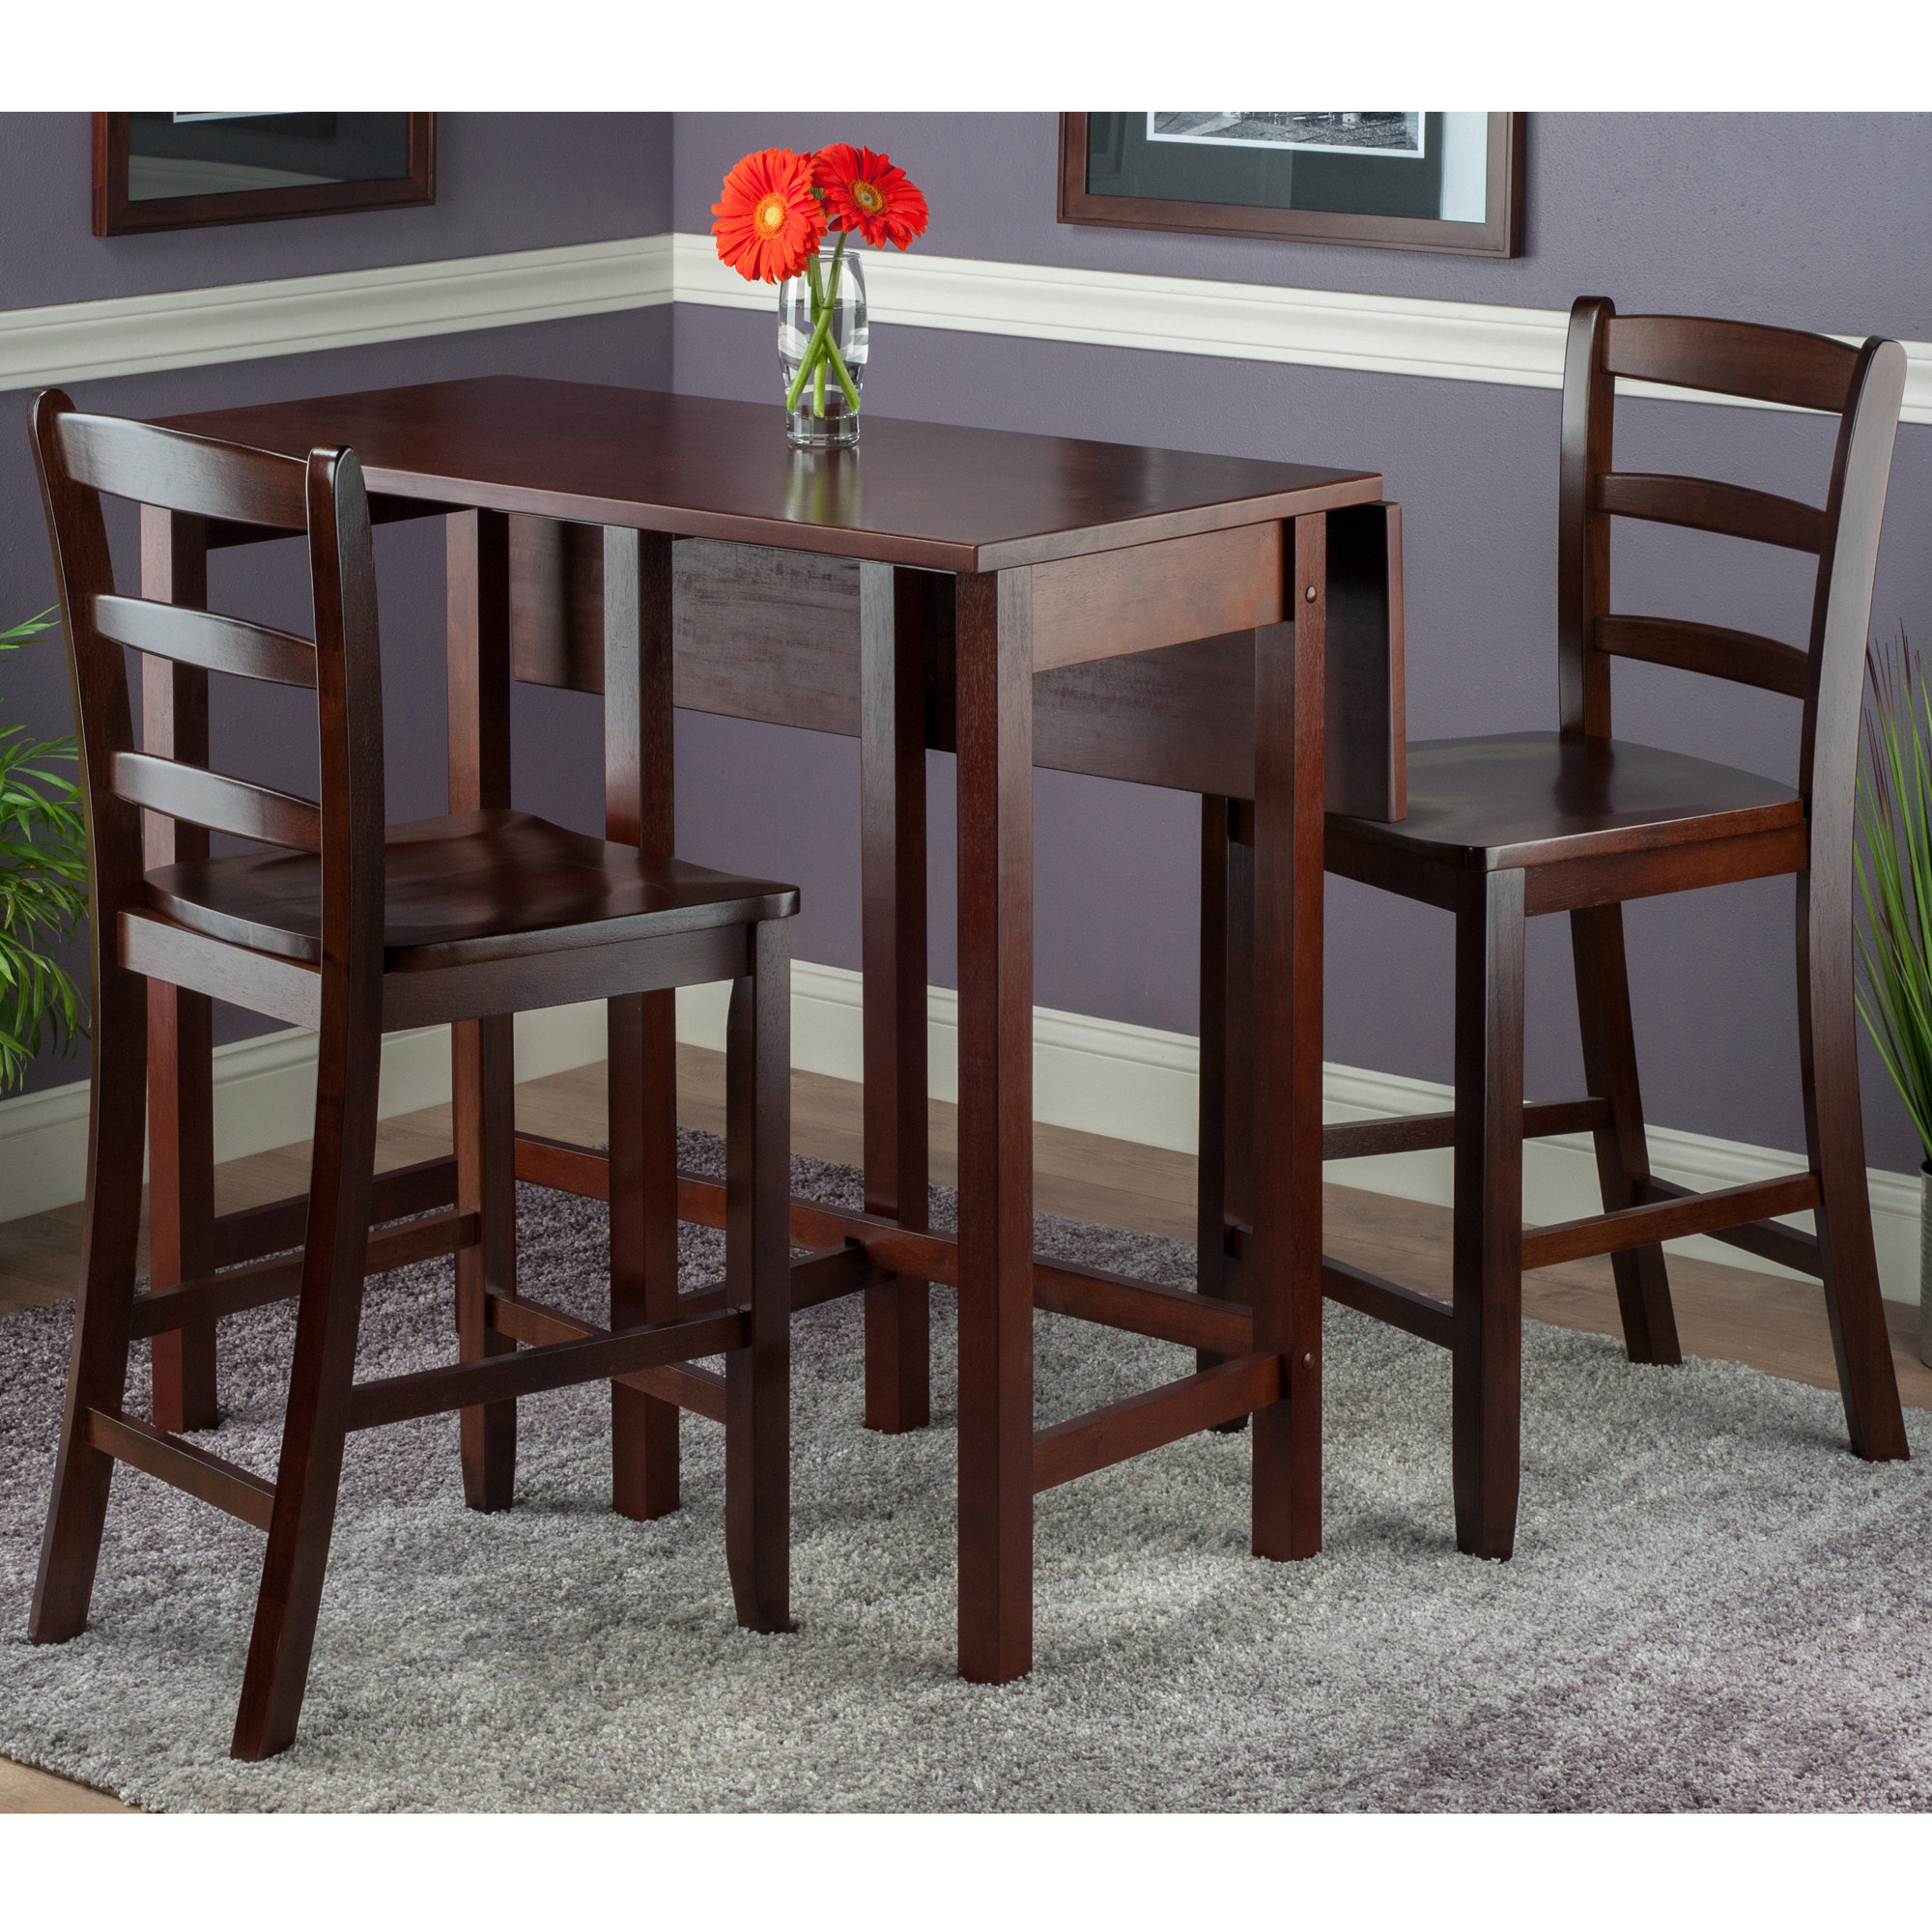 Well Known Red Barrel Studio Bettencourt 3 Piece Drop Leaf Dining Set Within Bettencourt 3 Piece Counter Height Solid Wood Dining Sets (View 3 of 25)